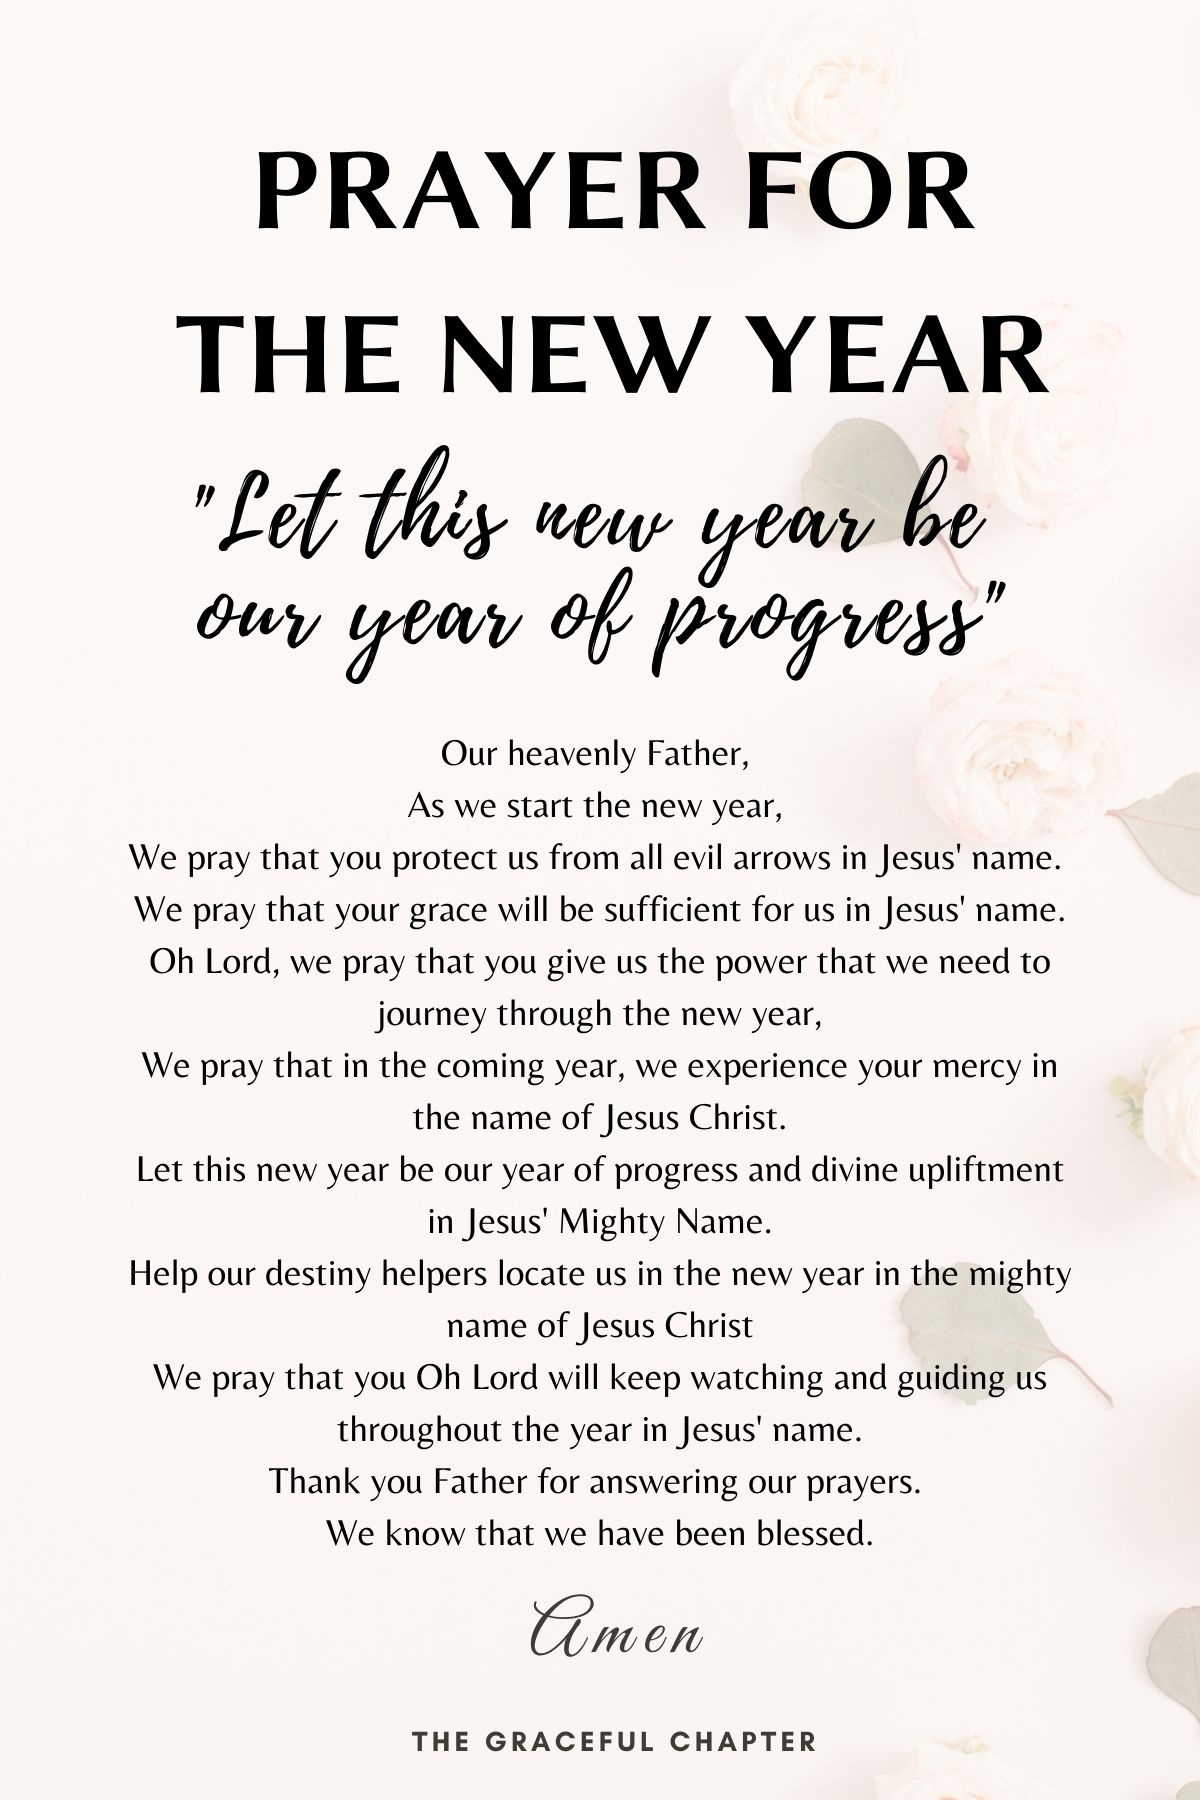 Let this new year be our year of progress